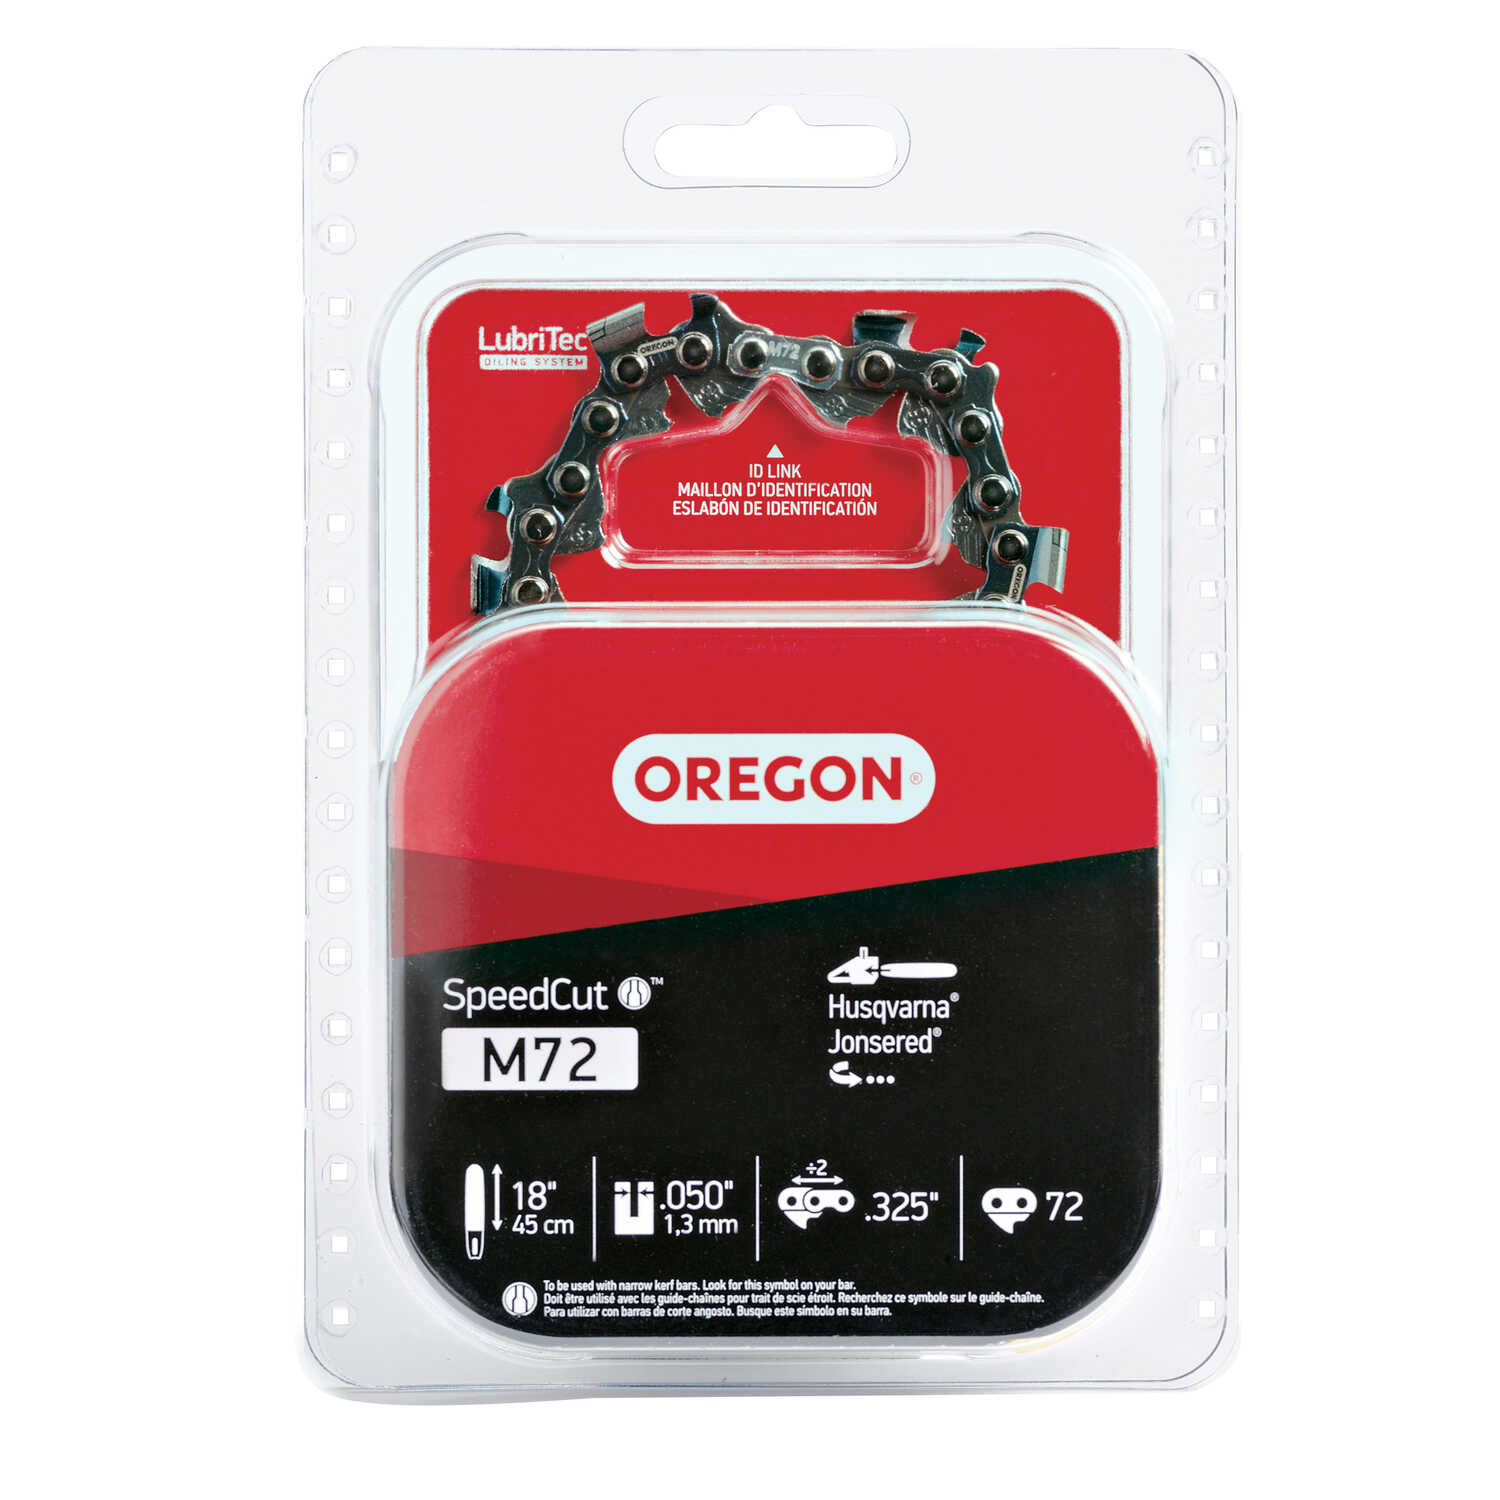 Oregon  Speed Cut  18 in. 72 links Chainsaw Chain